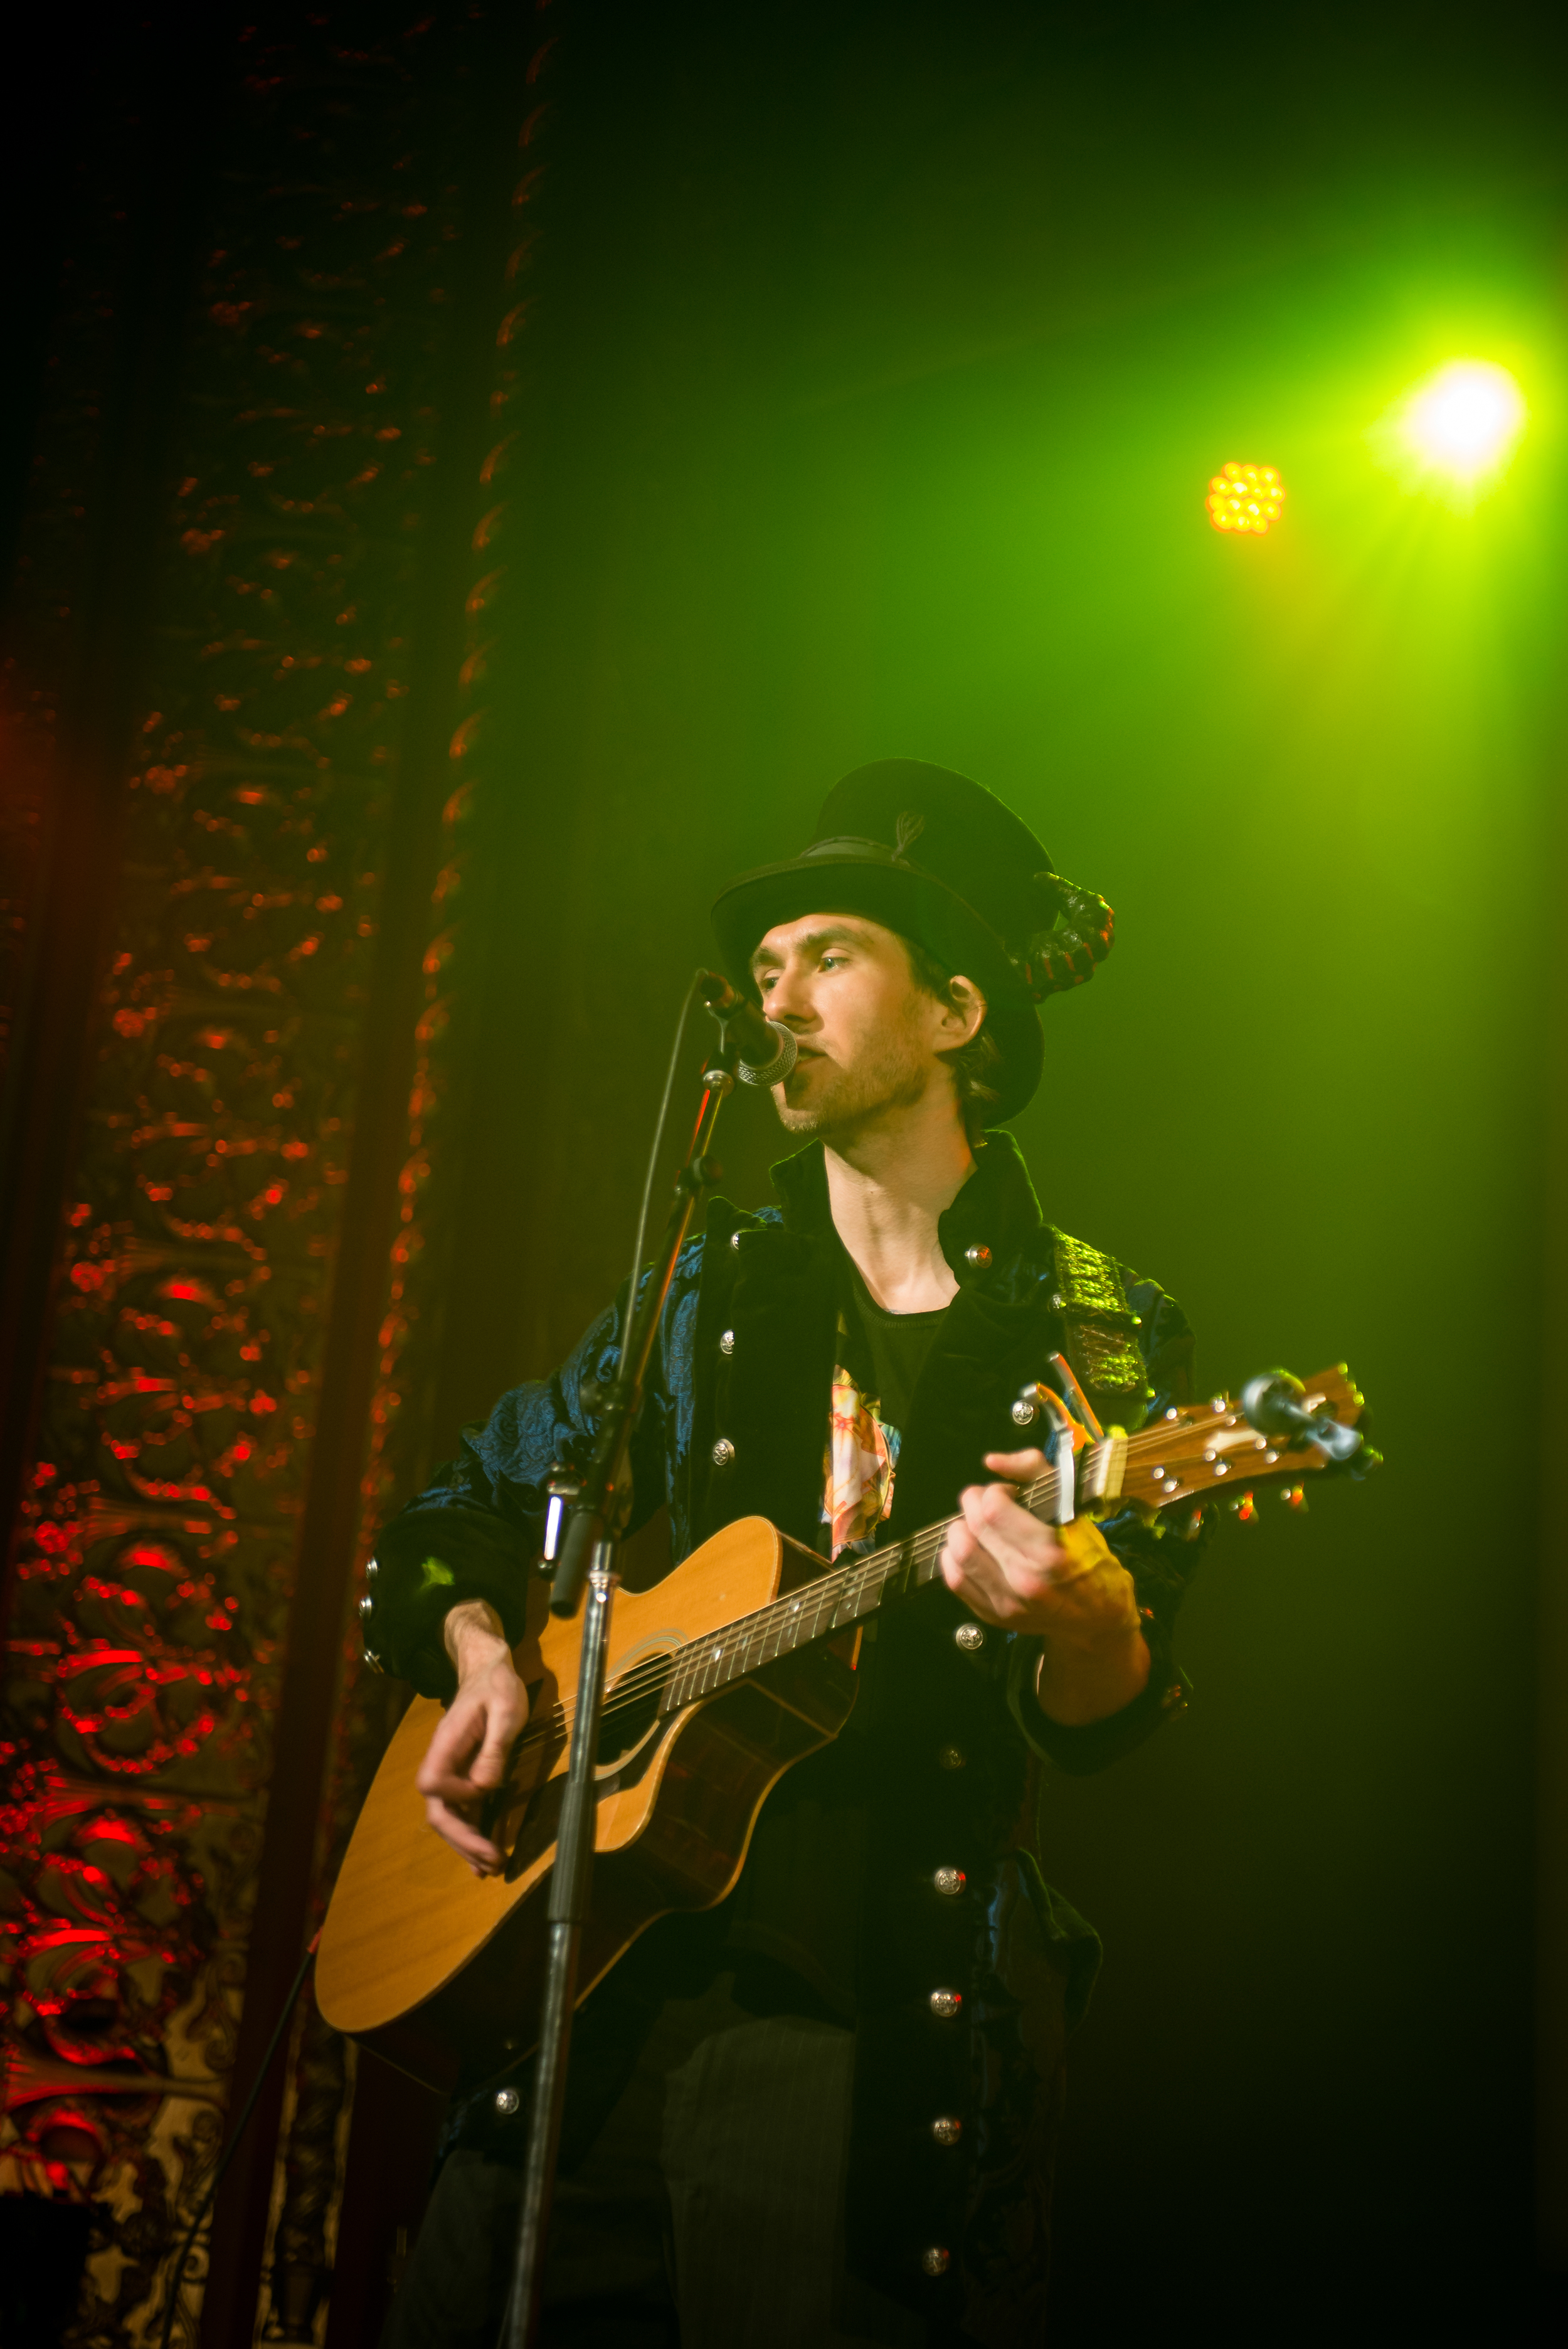 William Moon of Ky∆zMa (live at the RAW showcase at the Rialto Theater in Montreal, Quebec)